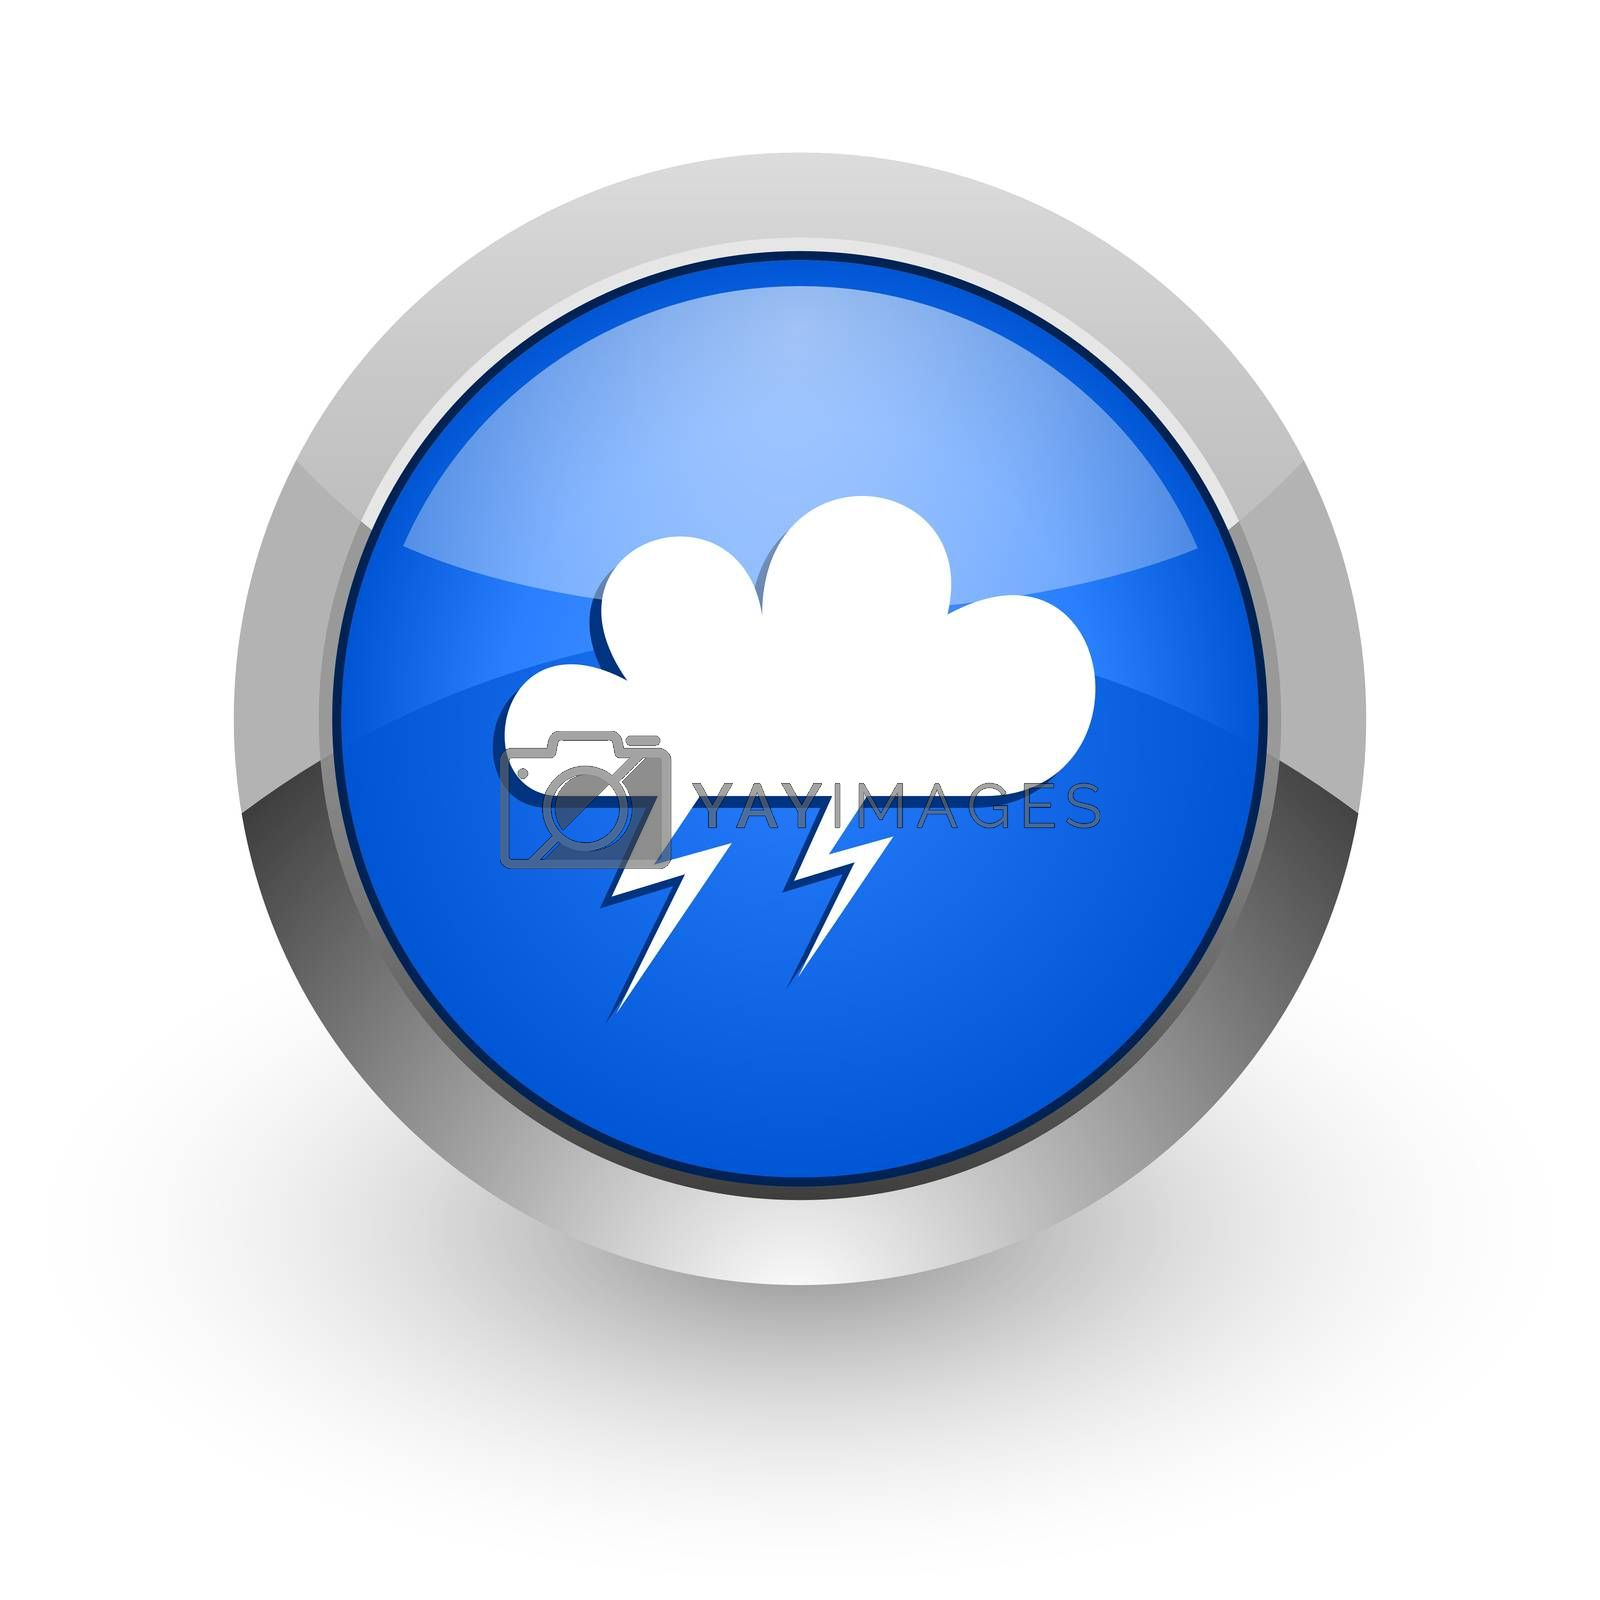 Royalty free image of storm blue glossy web icon by alexwhite